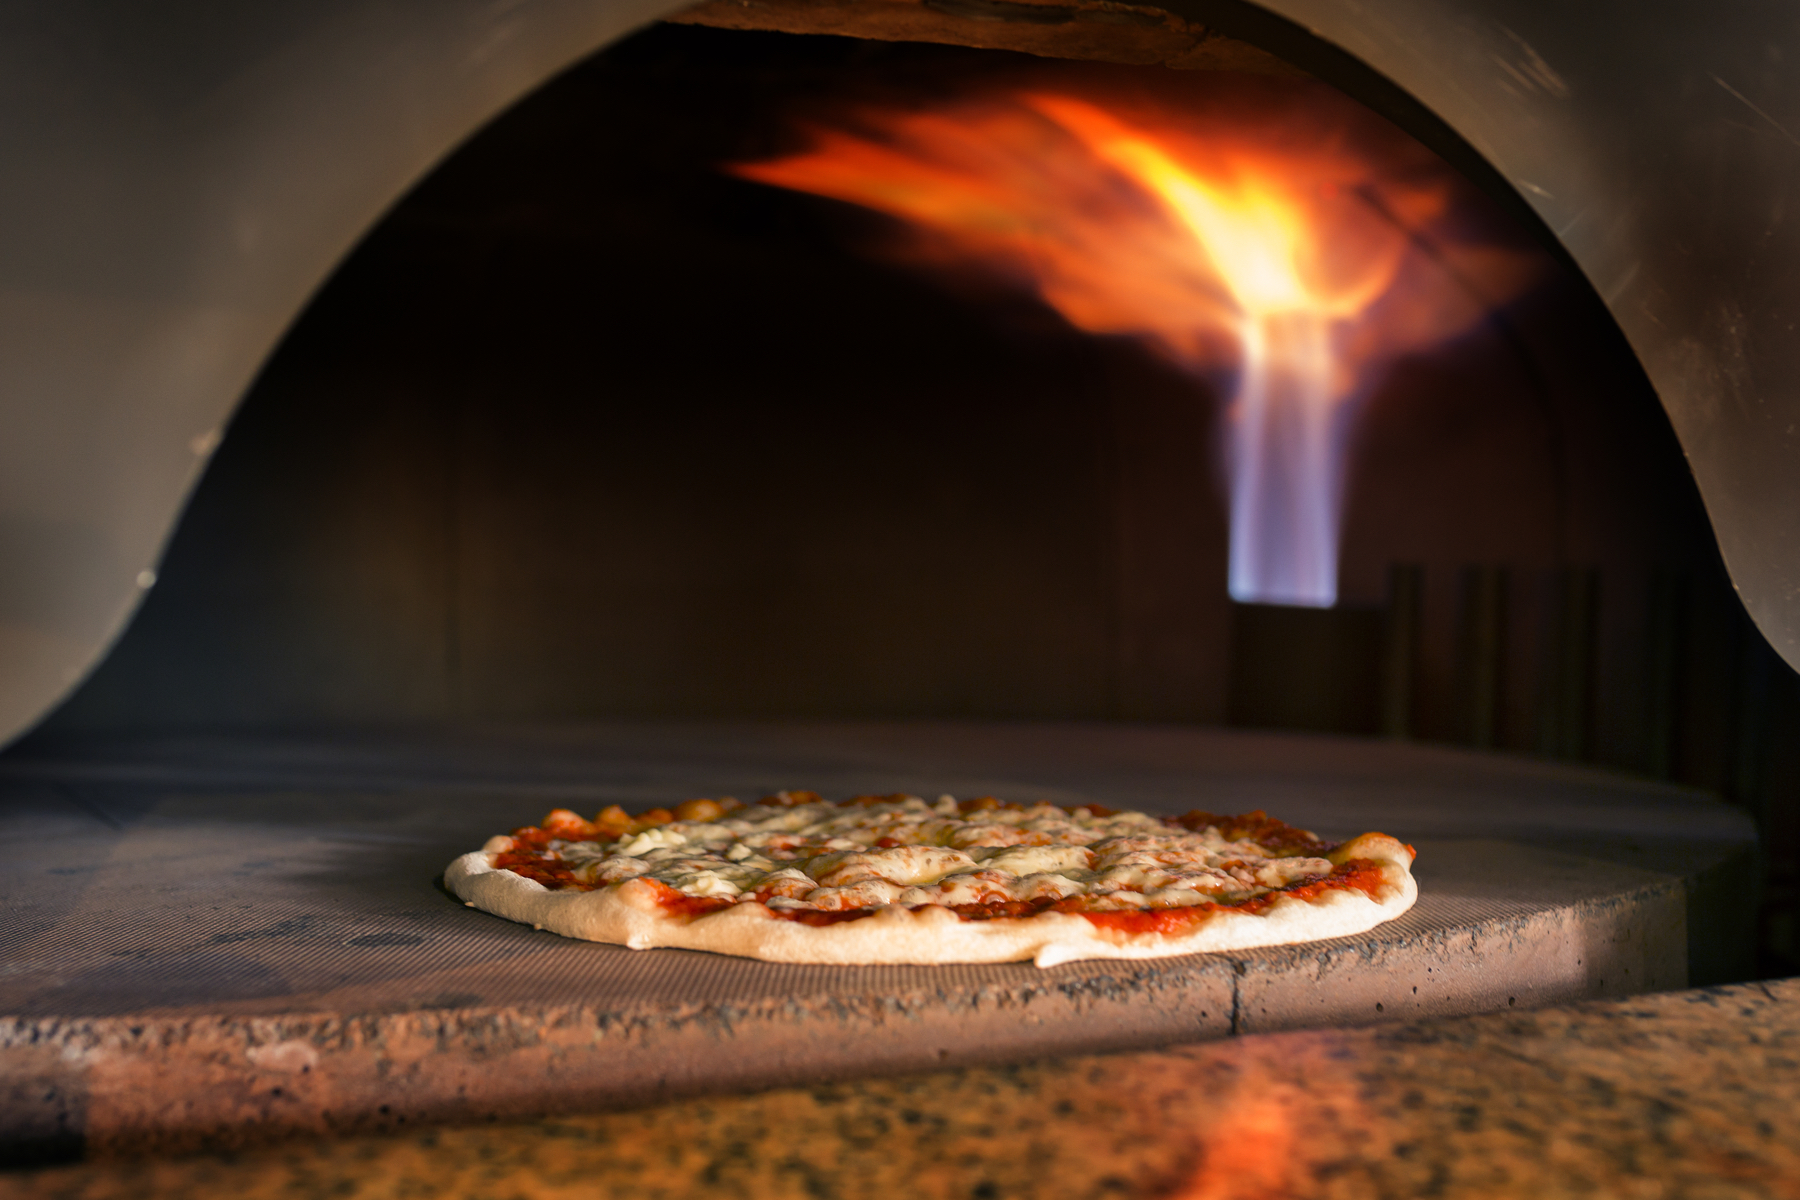 Agostinis Canberra pizza oven